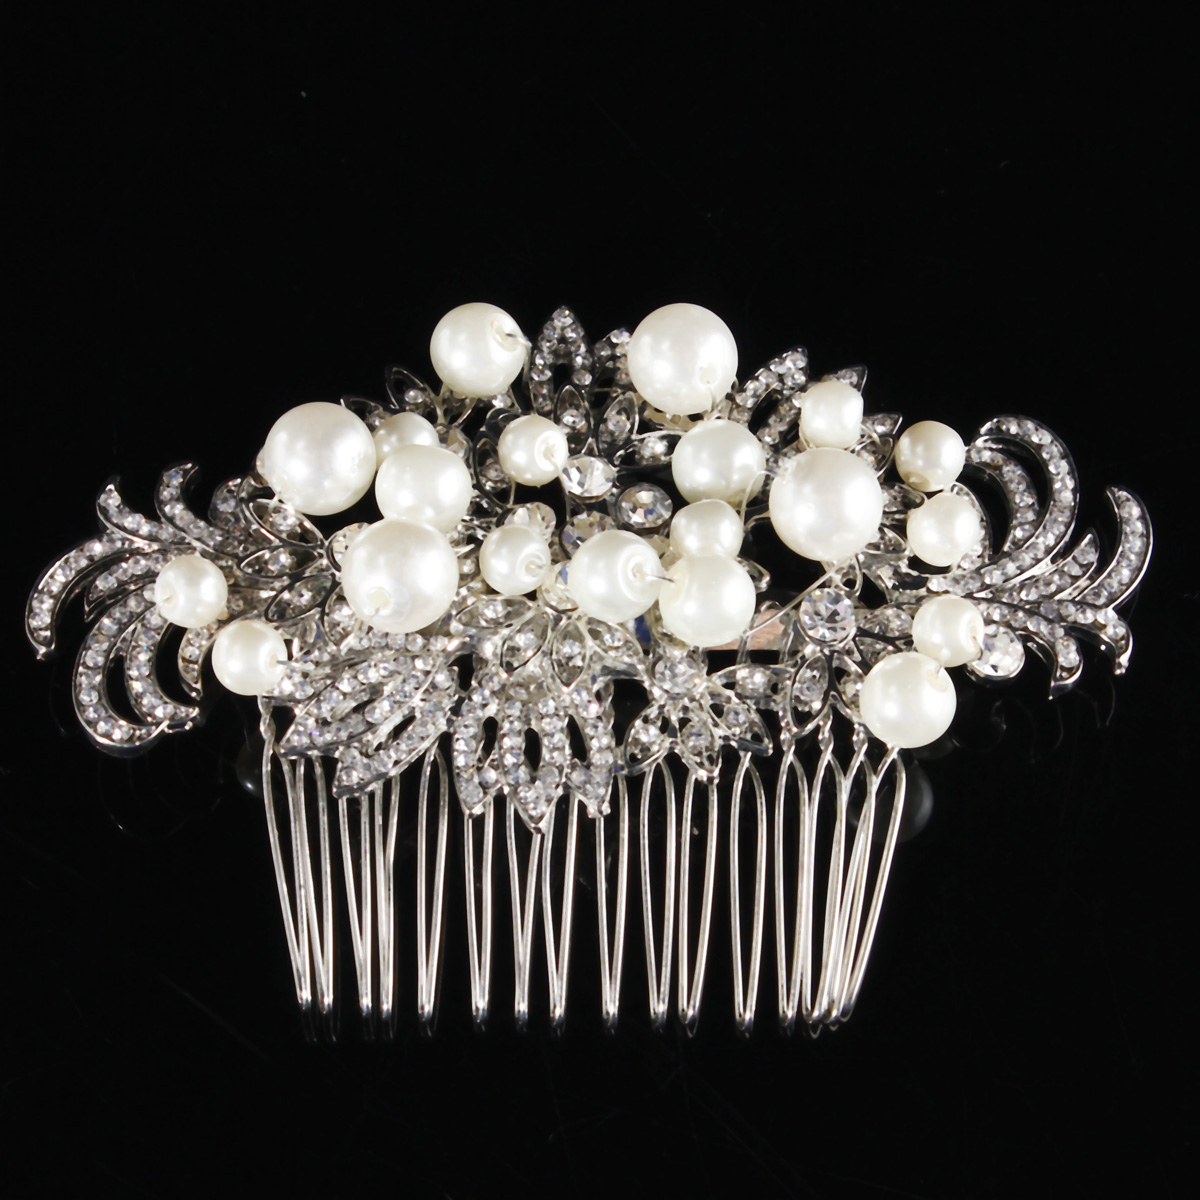 Buy Bridal Artificial Pearl Crystal Rhinestone Flowers Diamante Hair Clip Comb Bride Wedding Headpiece